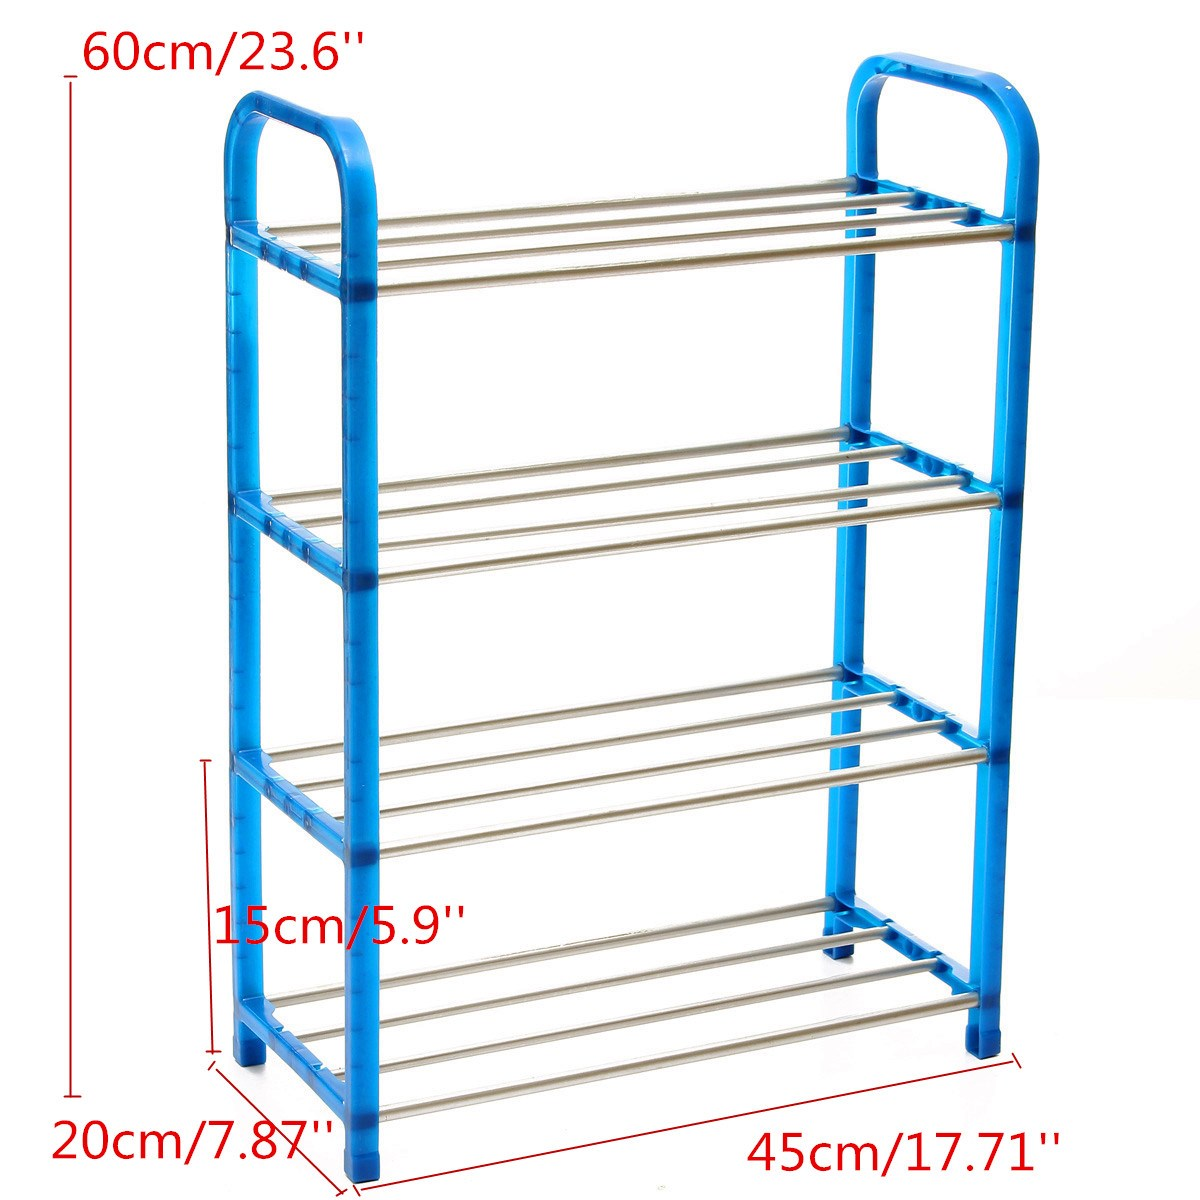 NEW Fashion Portable Stainless Steel ABS 4 Tier Layer Shoe Tower Rack Shelf Cabinet Stand Space Saving Organiser Storage(China (Mainland))